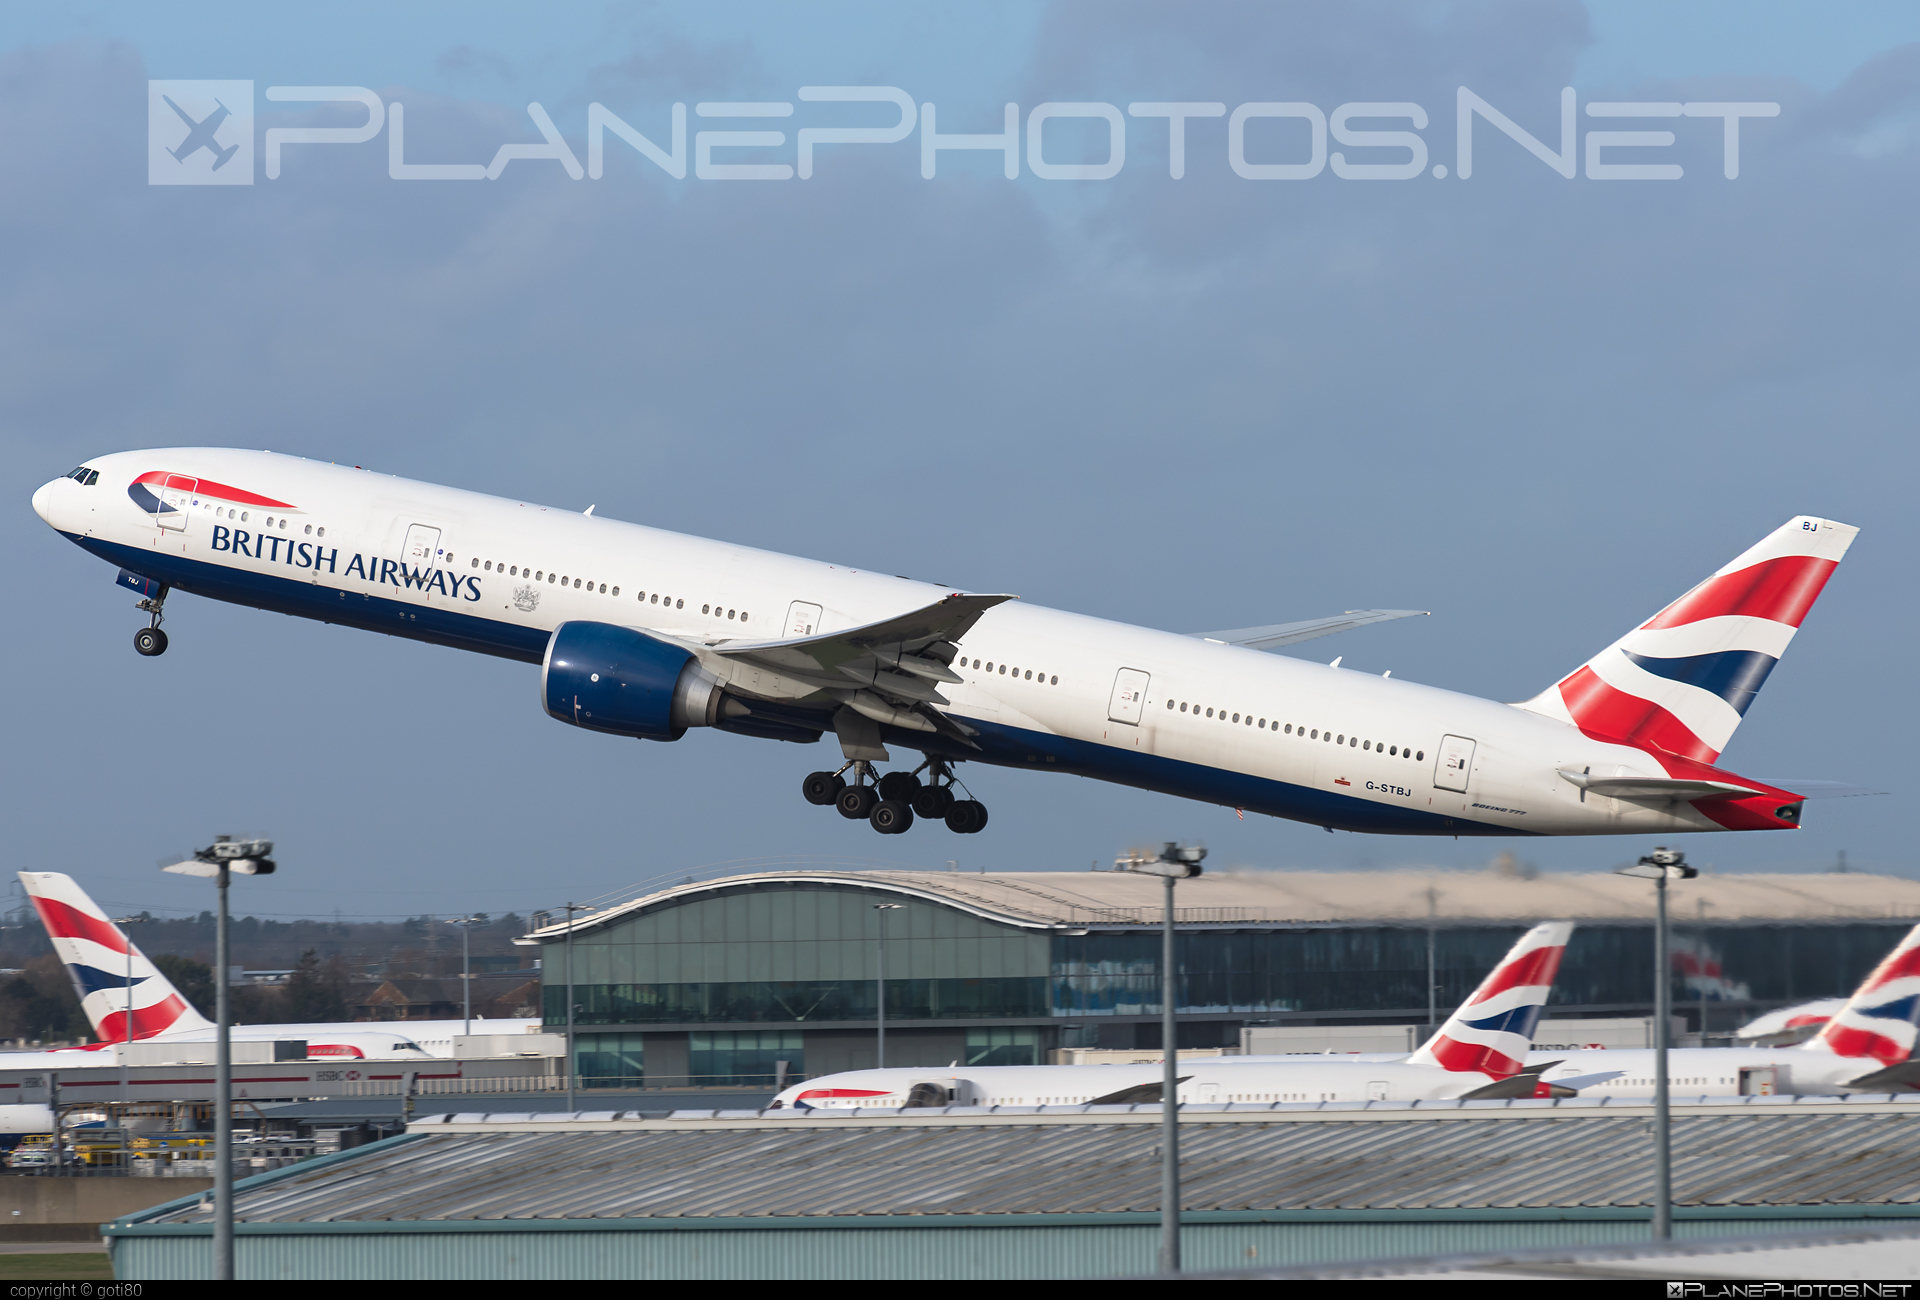 Boeing 777-300ER - G-STBJ operated by British Airways #b777 #b777er #boeing #boeing777 #britishairways #tripleseven